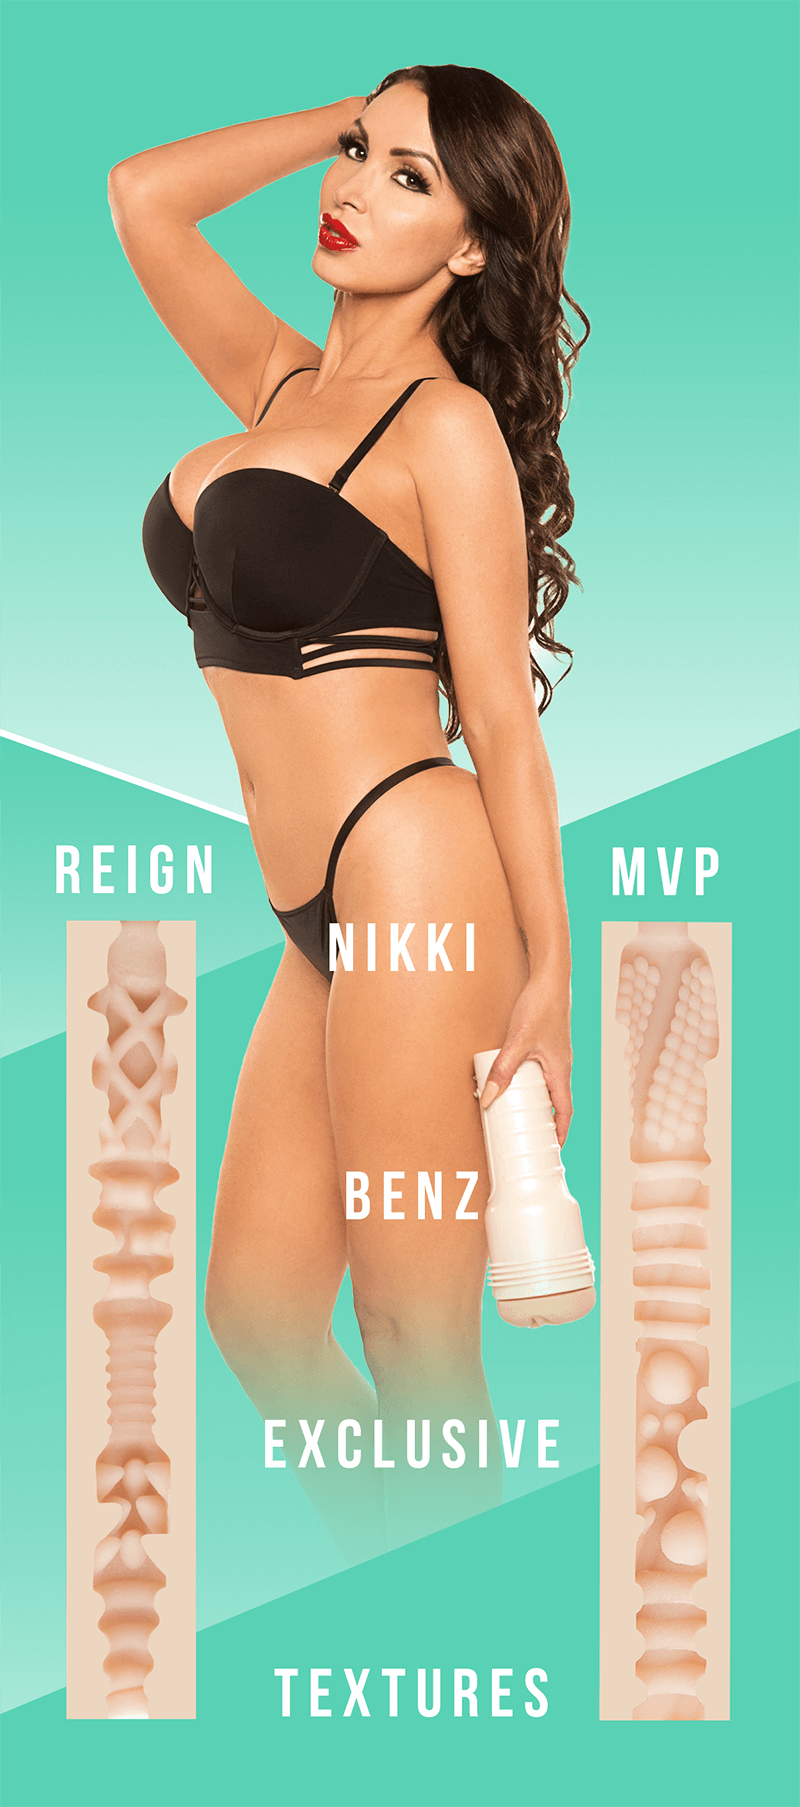 New Fleshlight Girl Nikki Benz Reign and MVP textures